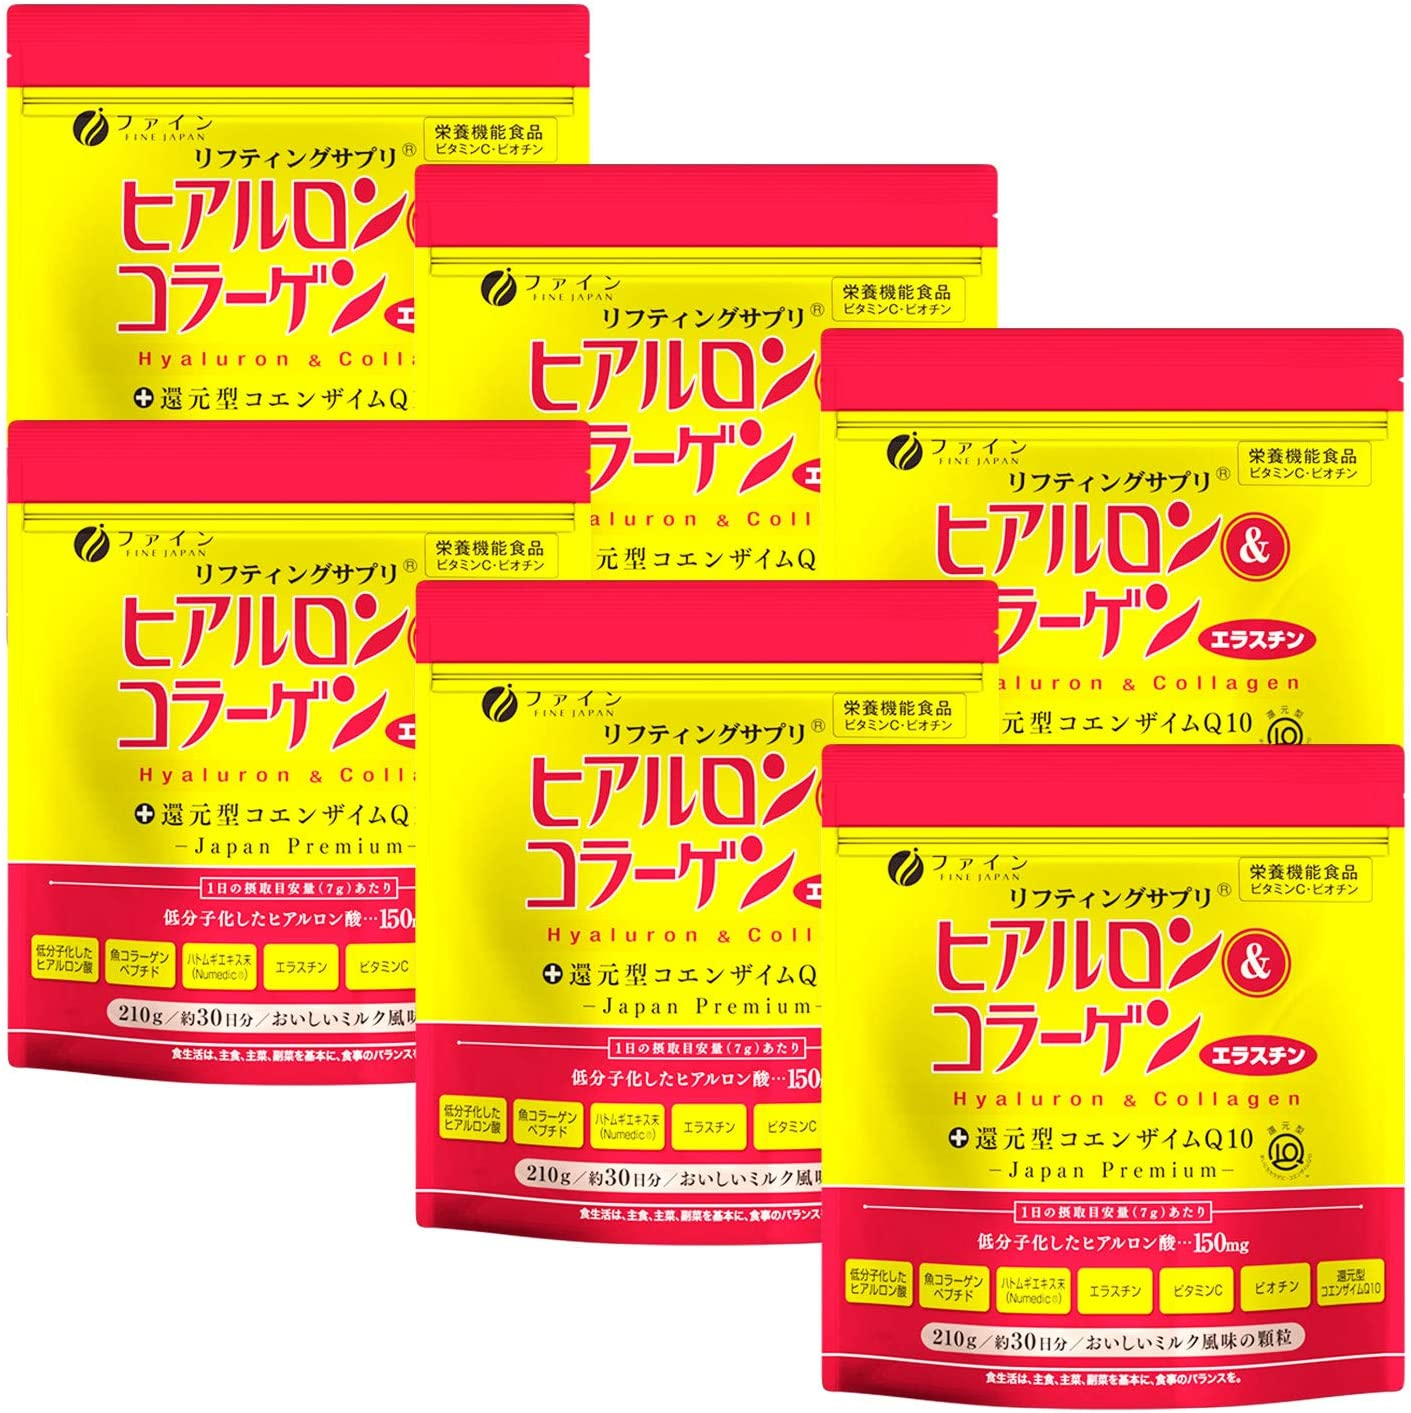 FINE Japan Hyaluronic Collagen Limited time sale + Approx. Max 62% OFF 30- 210g Ubiquinol x